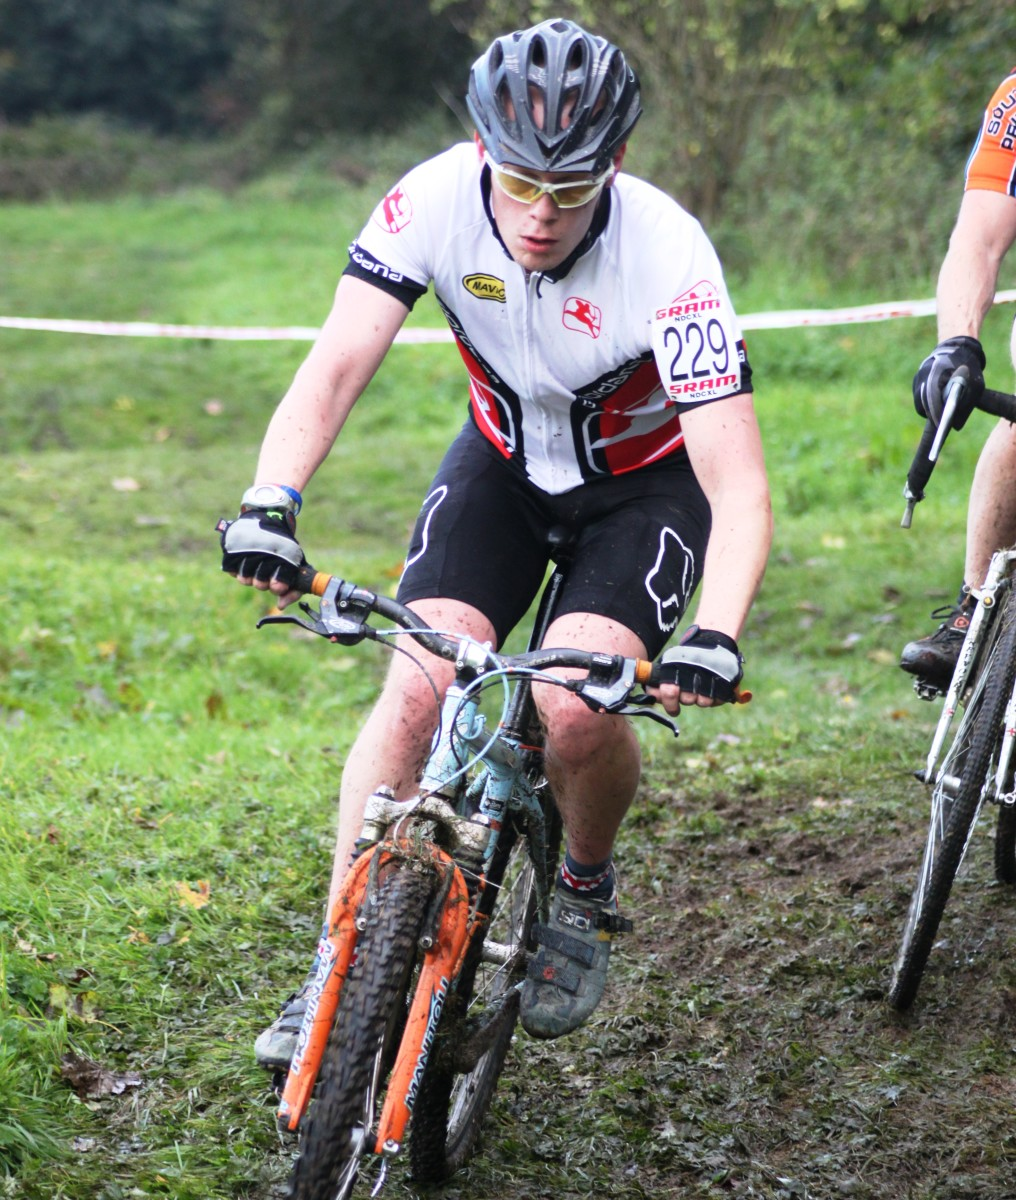 Cyclocross is great! But the right tires for your Mountain Bike can make a huge difference